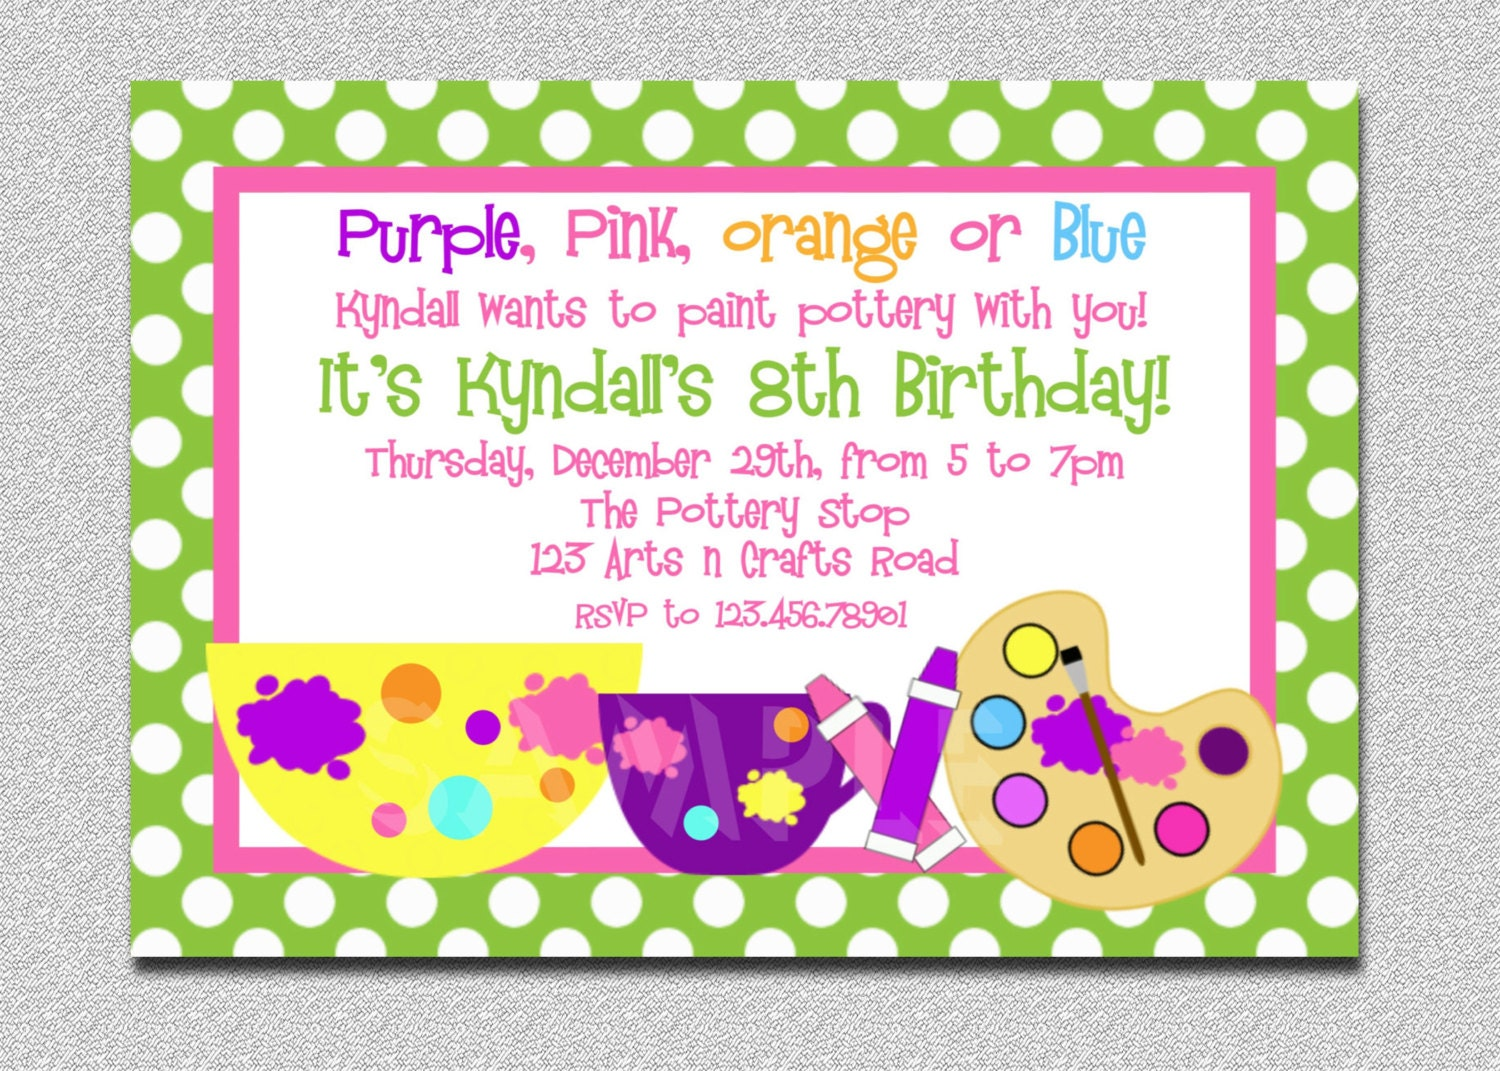 Arts and crafts birthday party invitation pottery birthday for Crafts for birthday parties